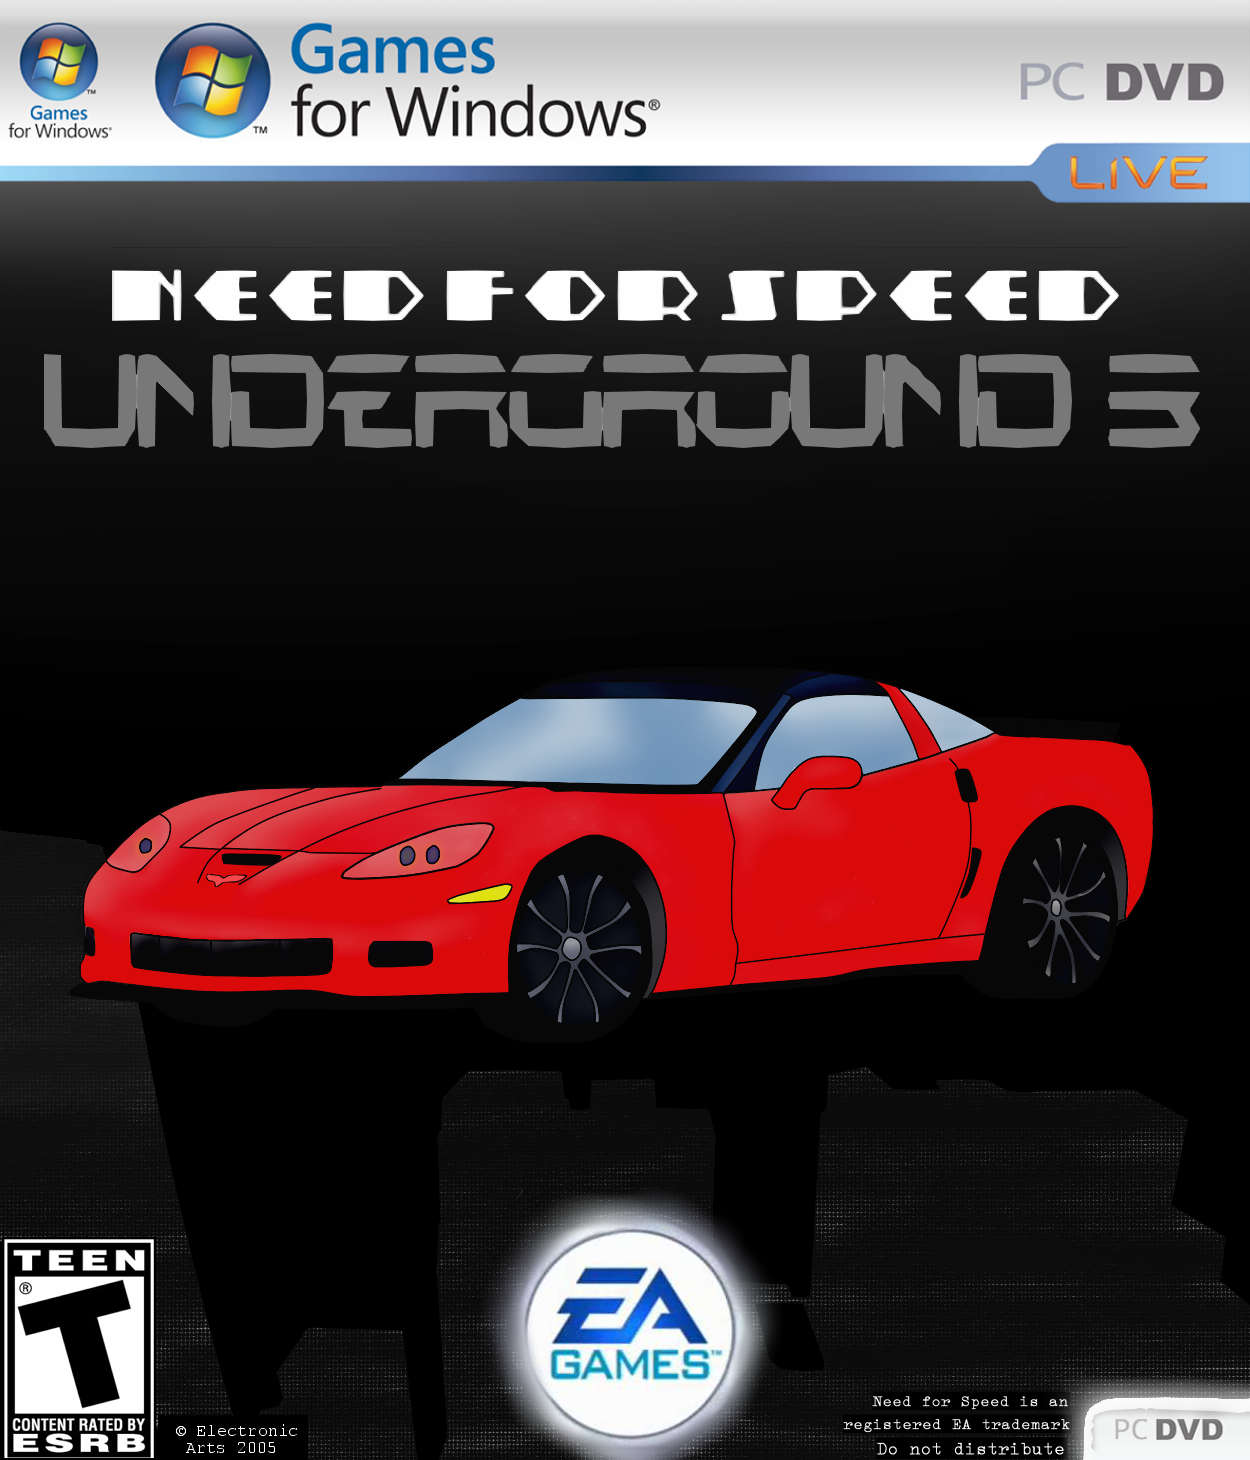 Need For Speed Underground 3 Fan Cover Art By Space Max On Deviantart